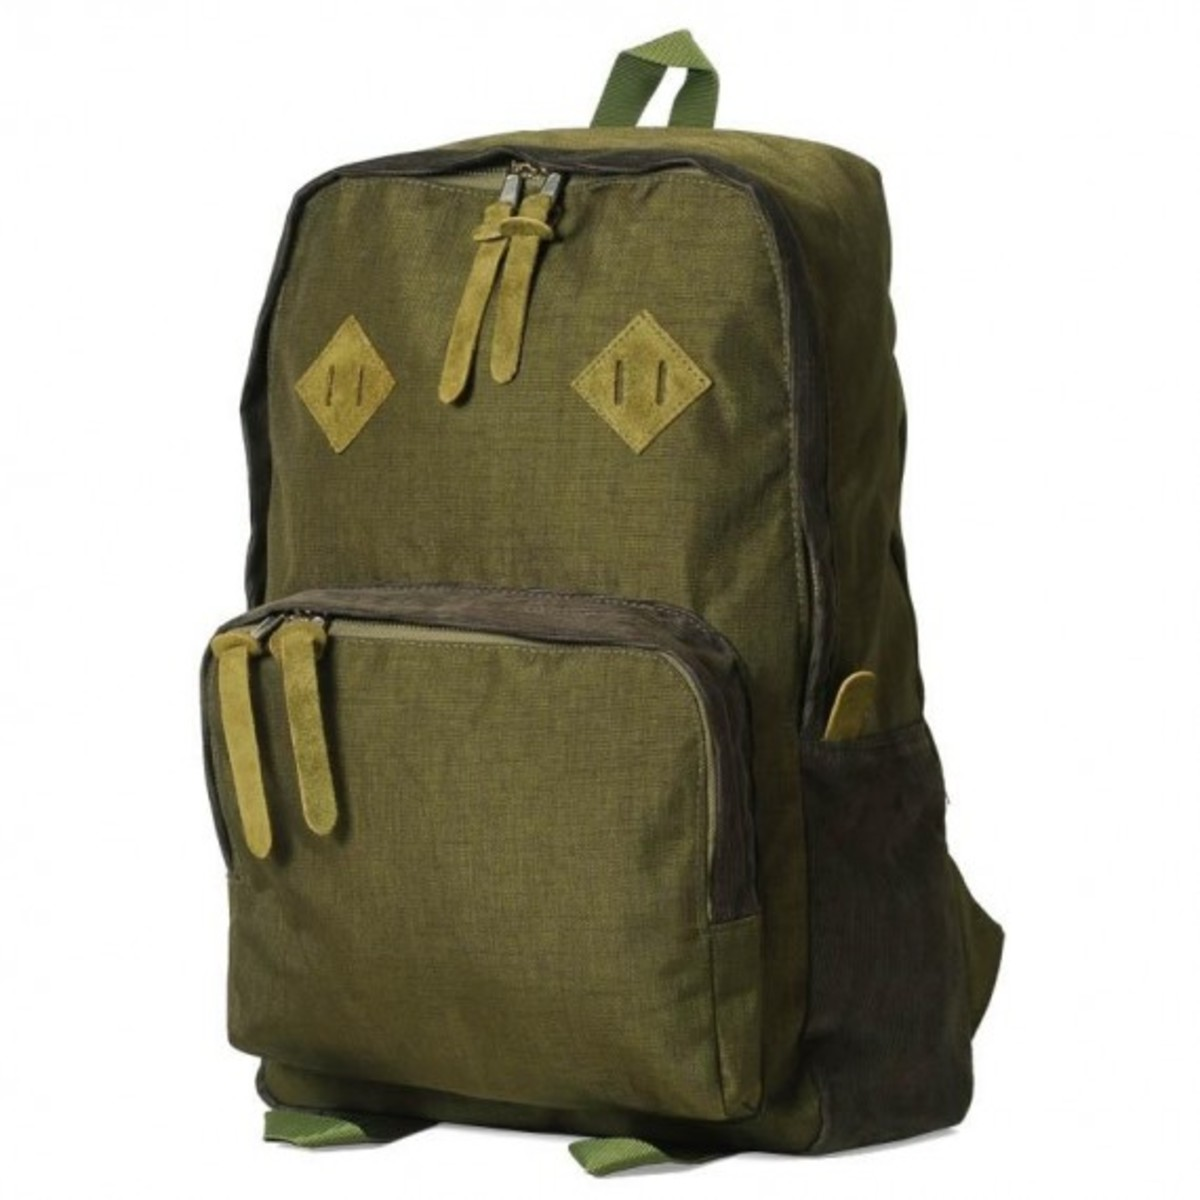 wardrobe- selspan-corduroy-backpacks-05